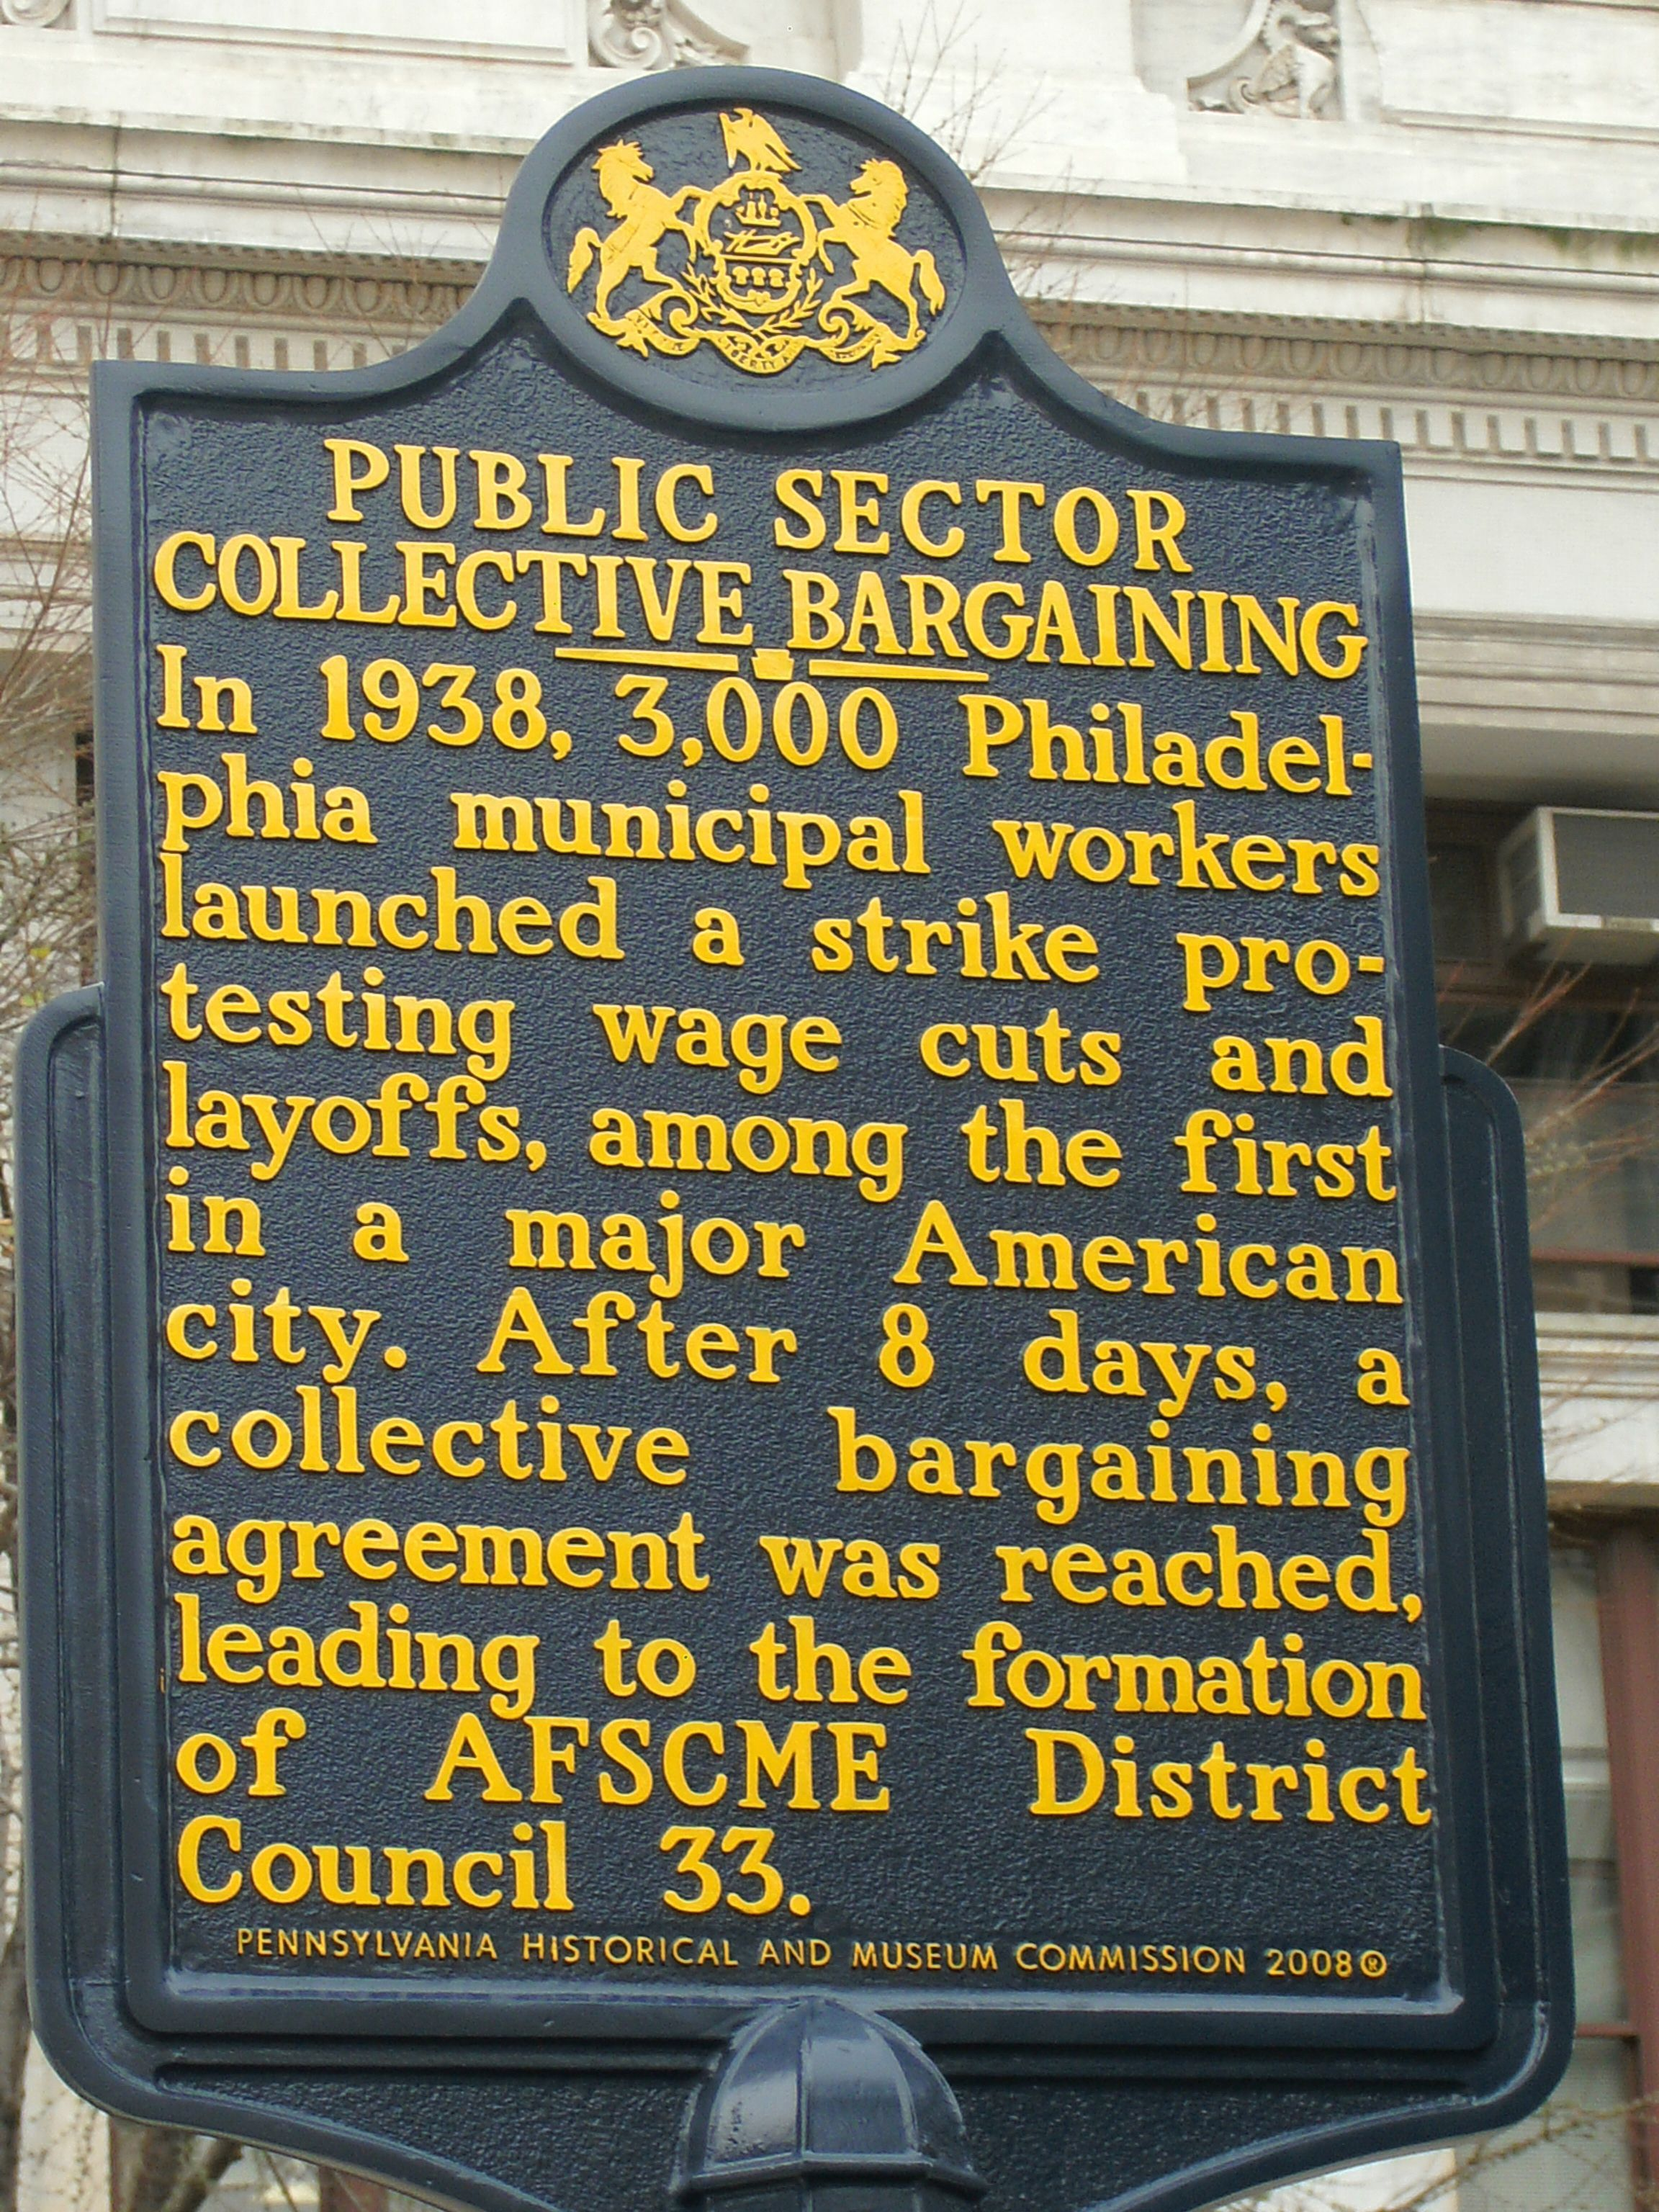 collective bargaining in the public sector America's public-sector unions are on the defensive wisconsin has stripped them of most collective-bargaining rights and ended mandatory dues payments union-negotiated pension benefits are.